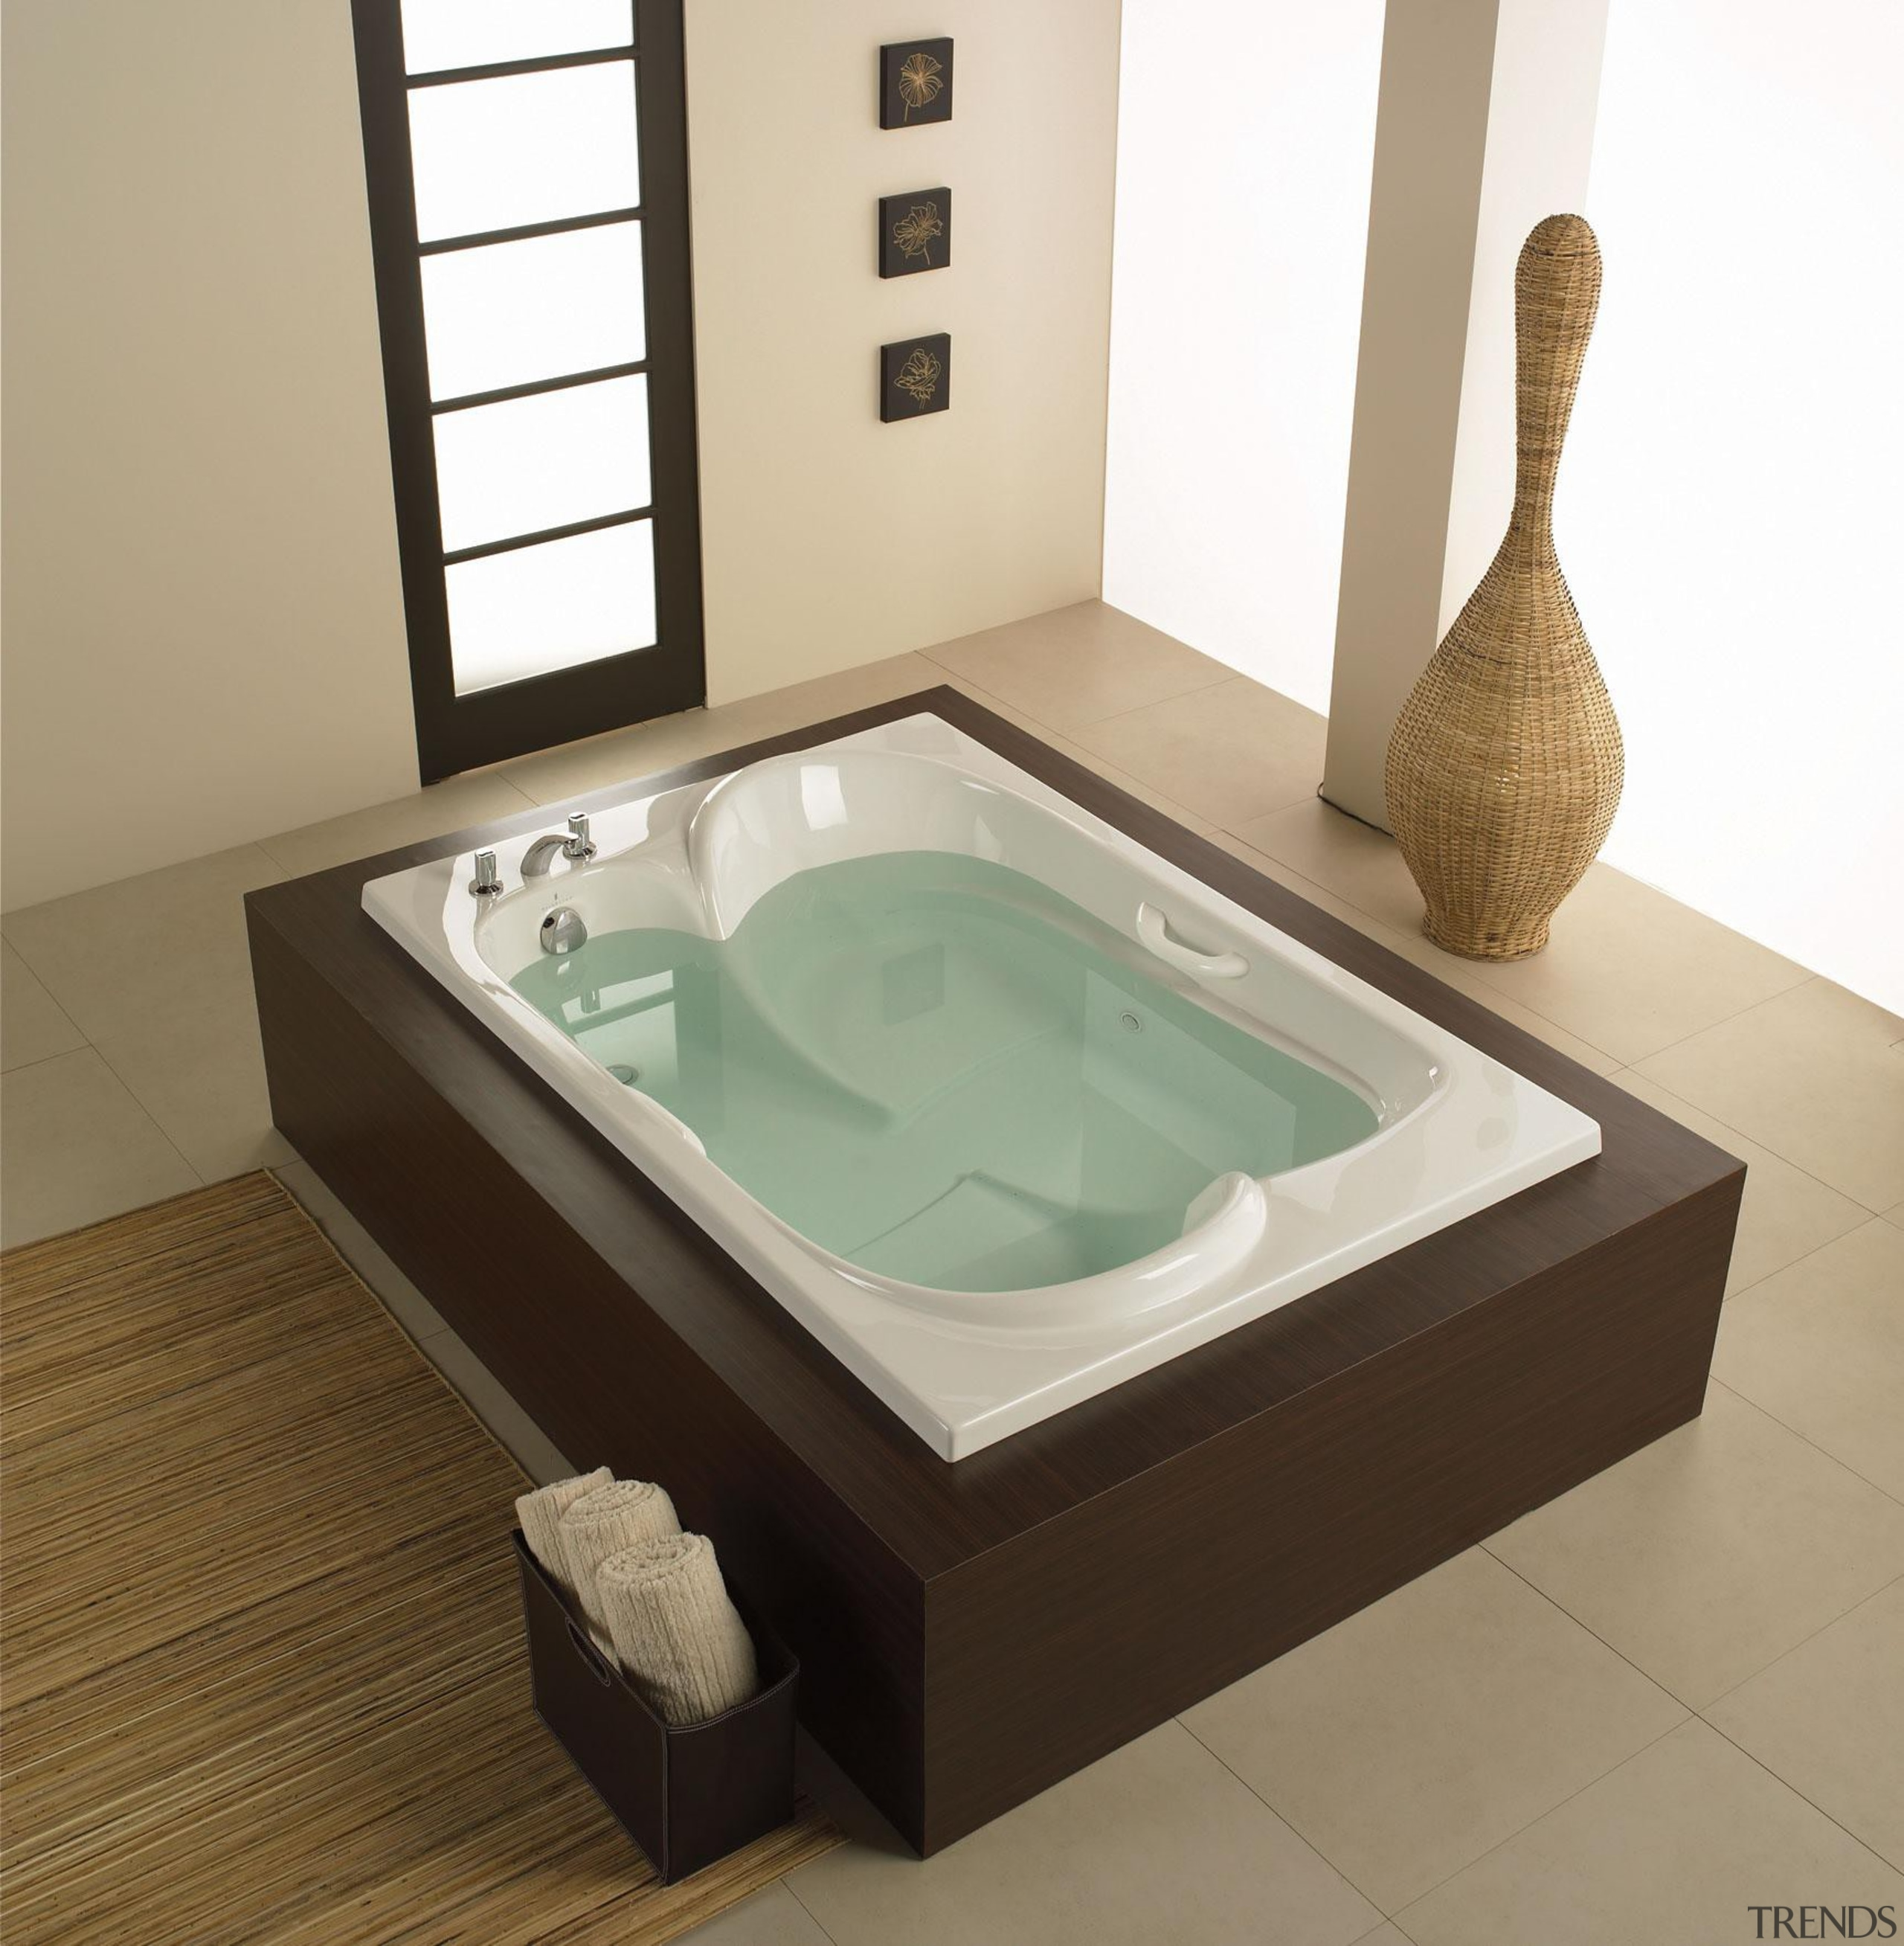 amma 7048.jpg - amma_7048.jpg - bathroom sink | bathroom sink, bathtub, jacuzzi, plumbing fixture, product design, sink, tap, white, brown